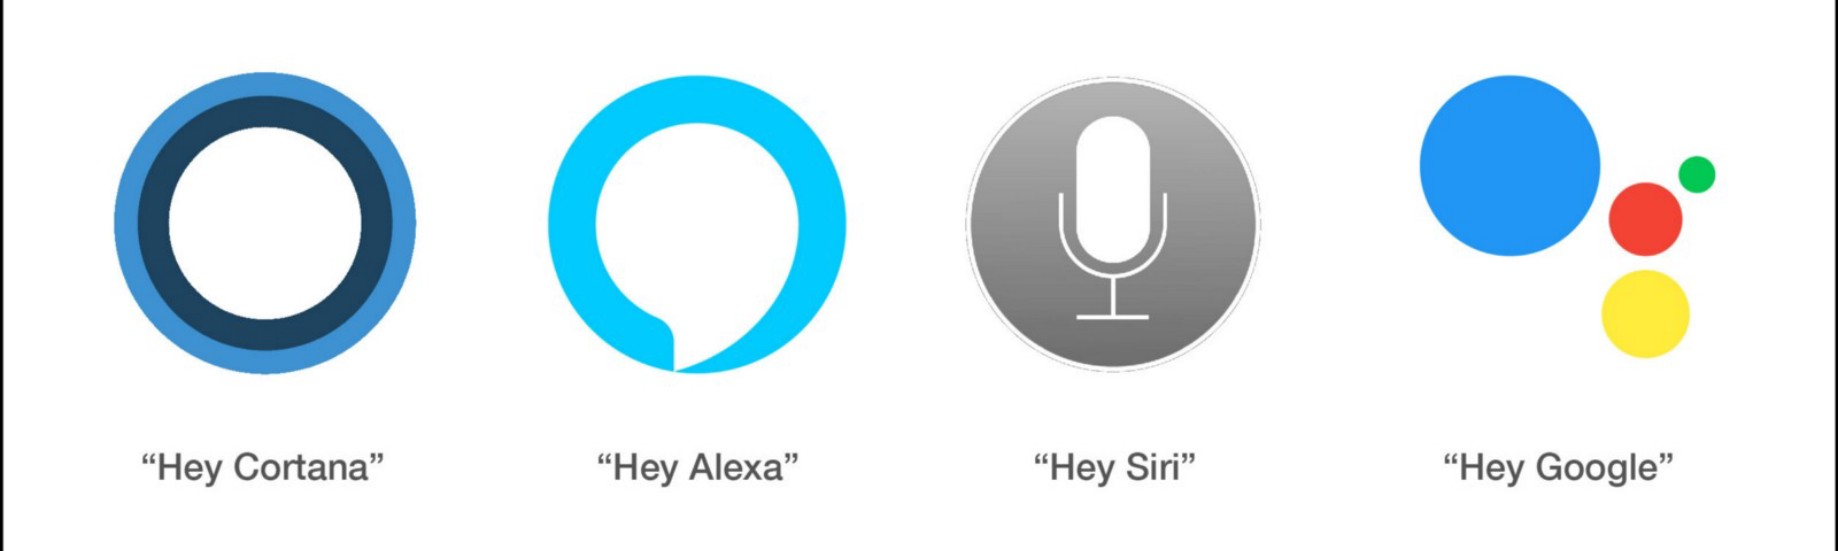 Machine Learning: Voice assistants can start responding to